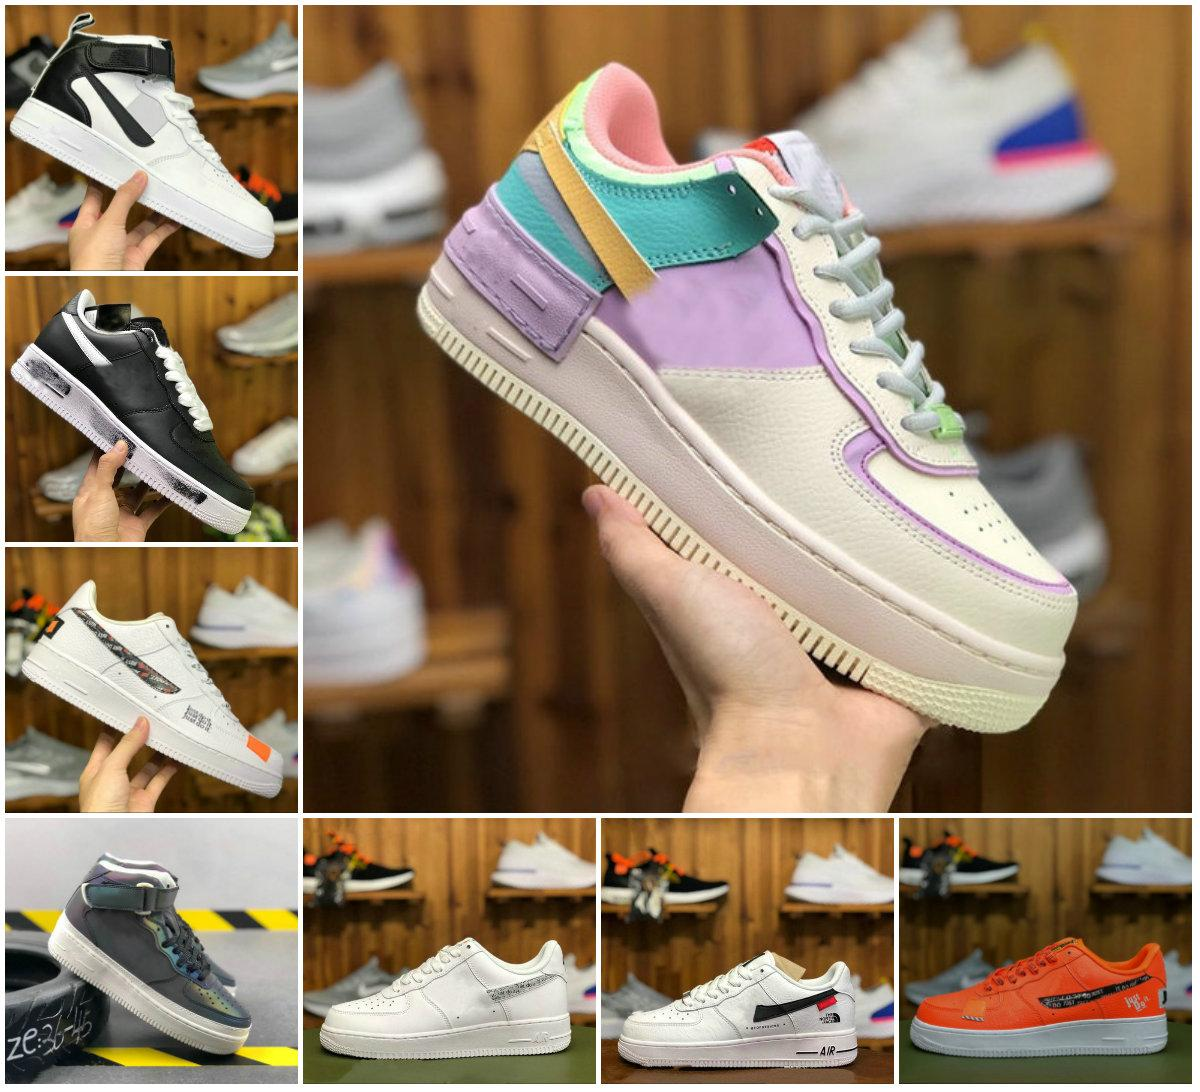 2020 New PEACEMINUSONE x Forces Mid Running Shoes Forced WMNS Shadow Tropical Twist Sneaker Designer All White Low Cut One 1 Dunk Chaussures